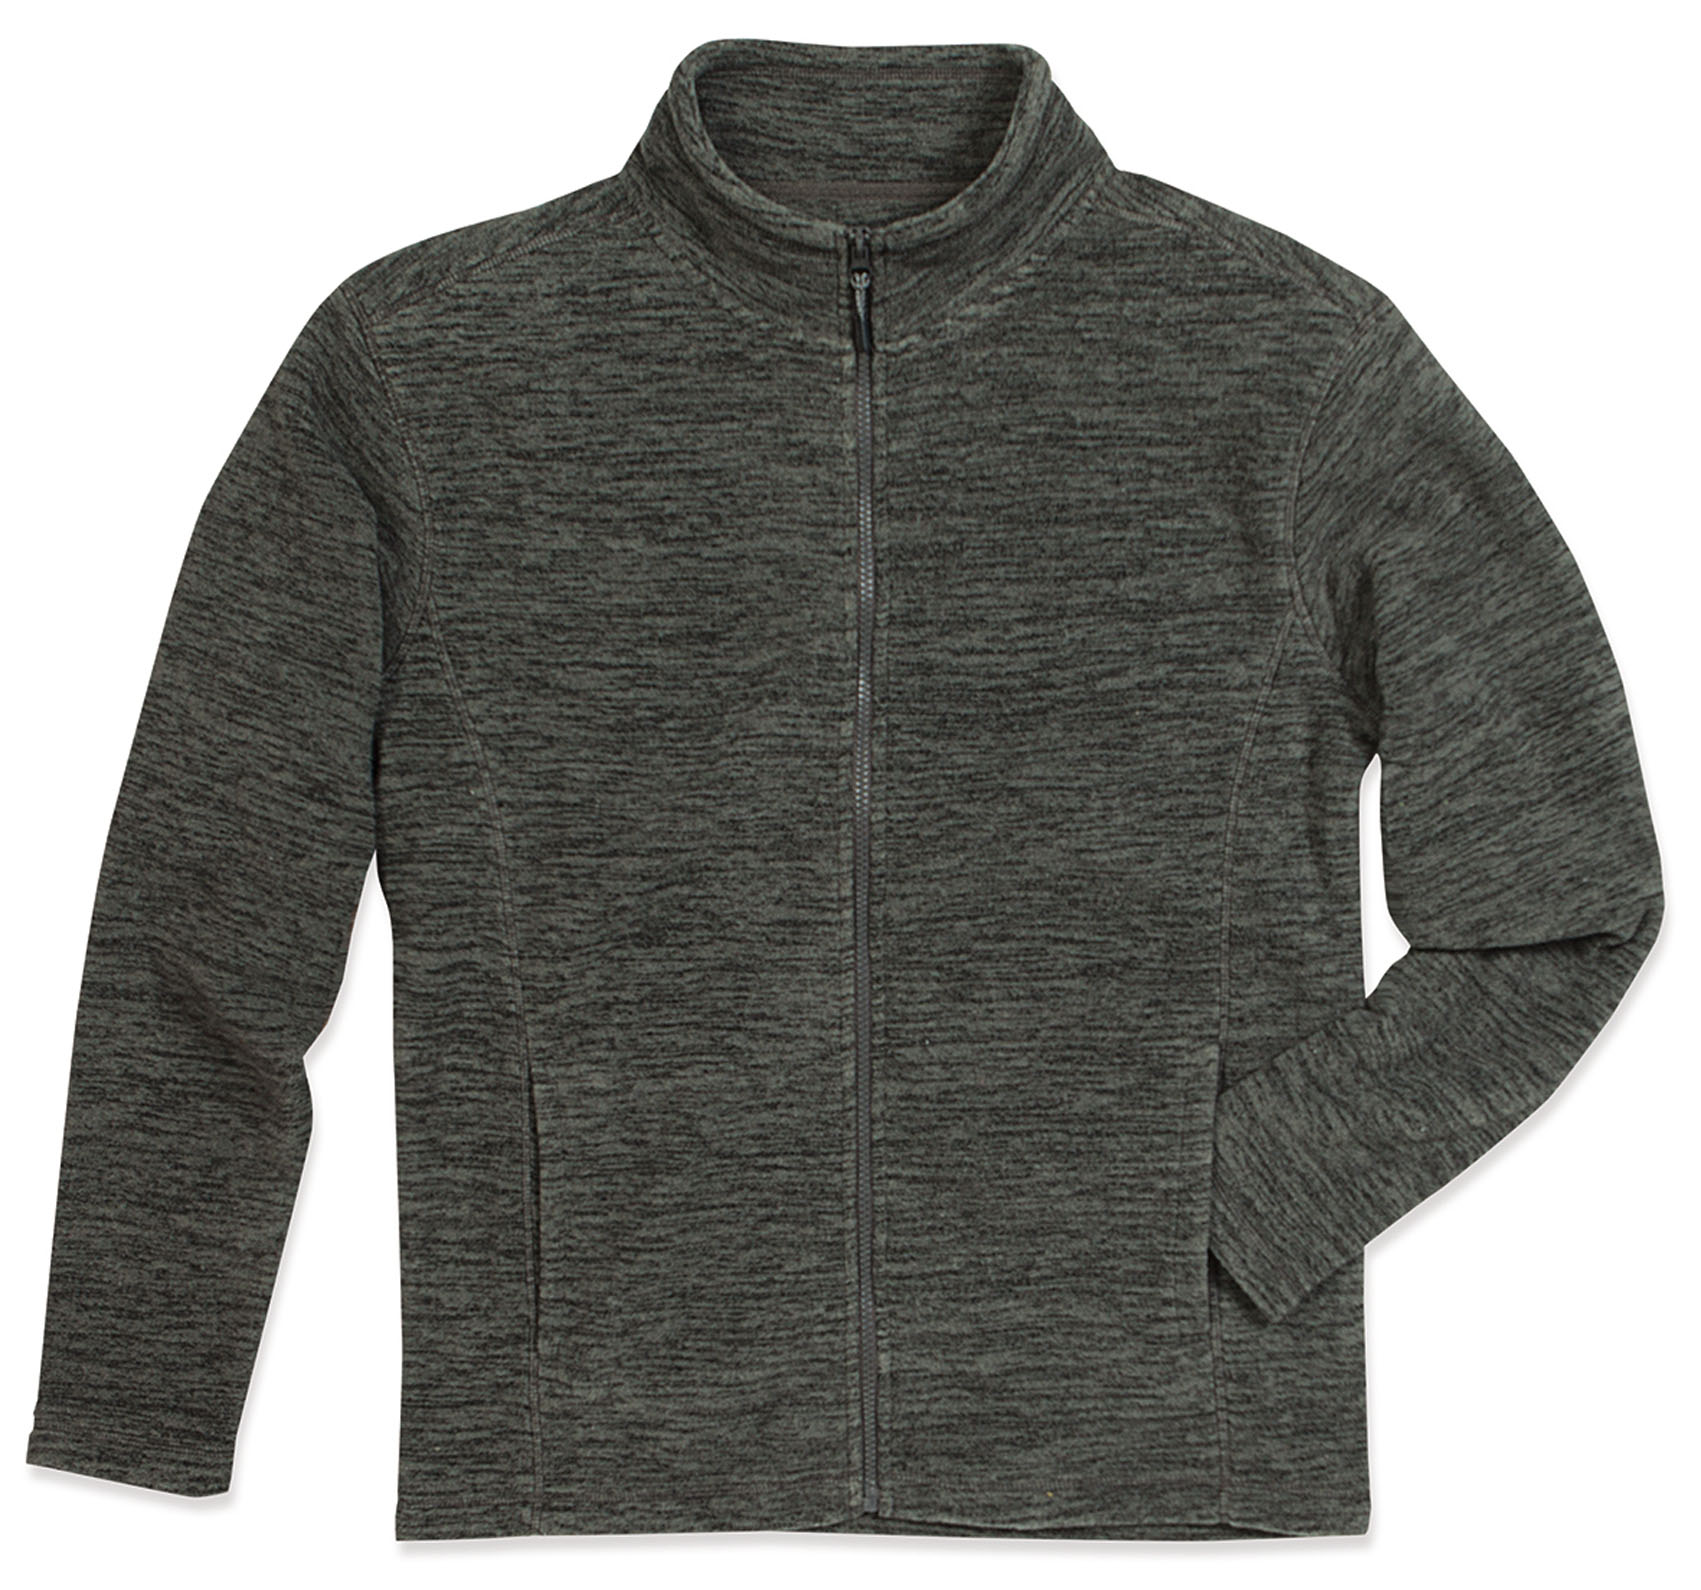 Stedman Melange Fleece Cardigan Active for him